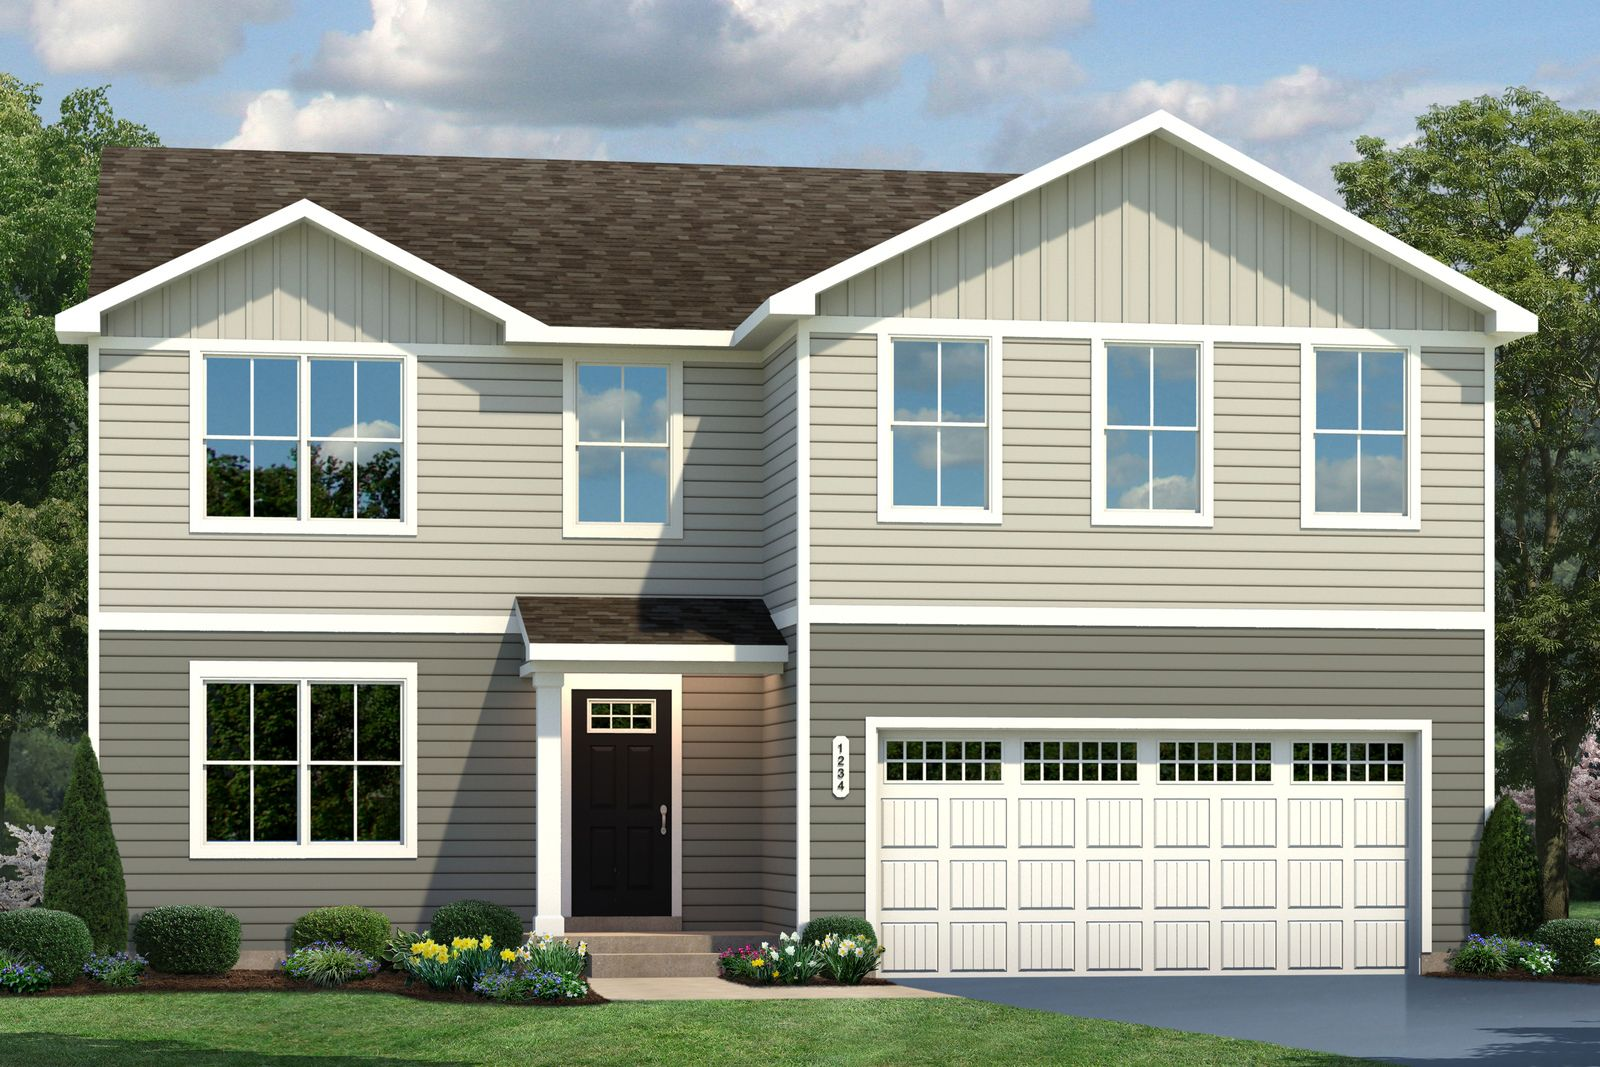 New Construction Homes & Plans in Amherst, NY | 84 Homes